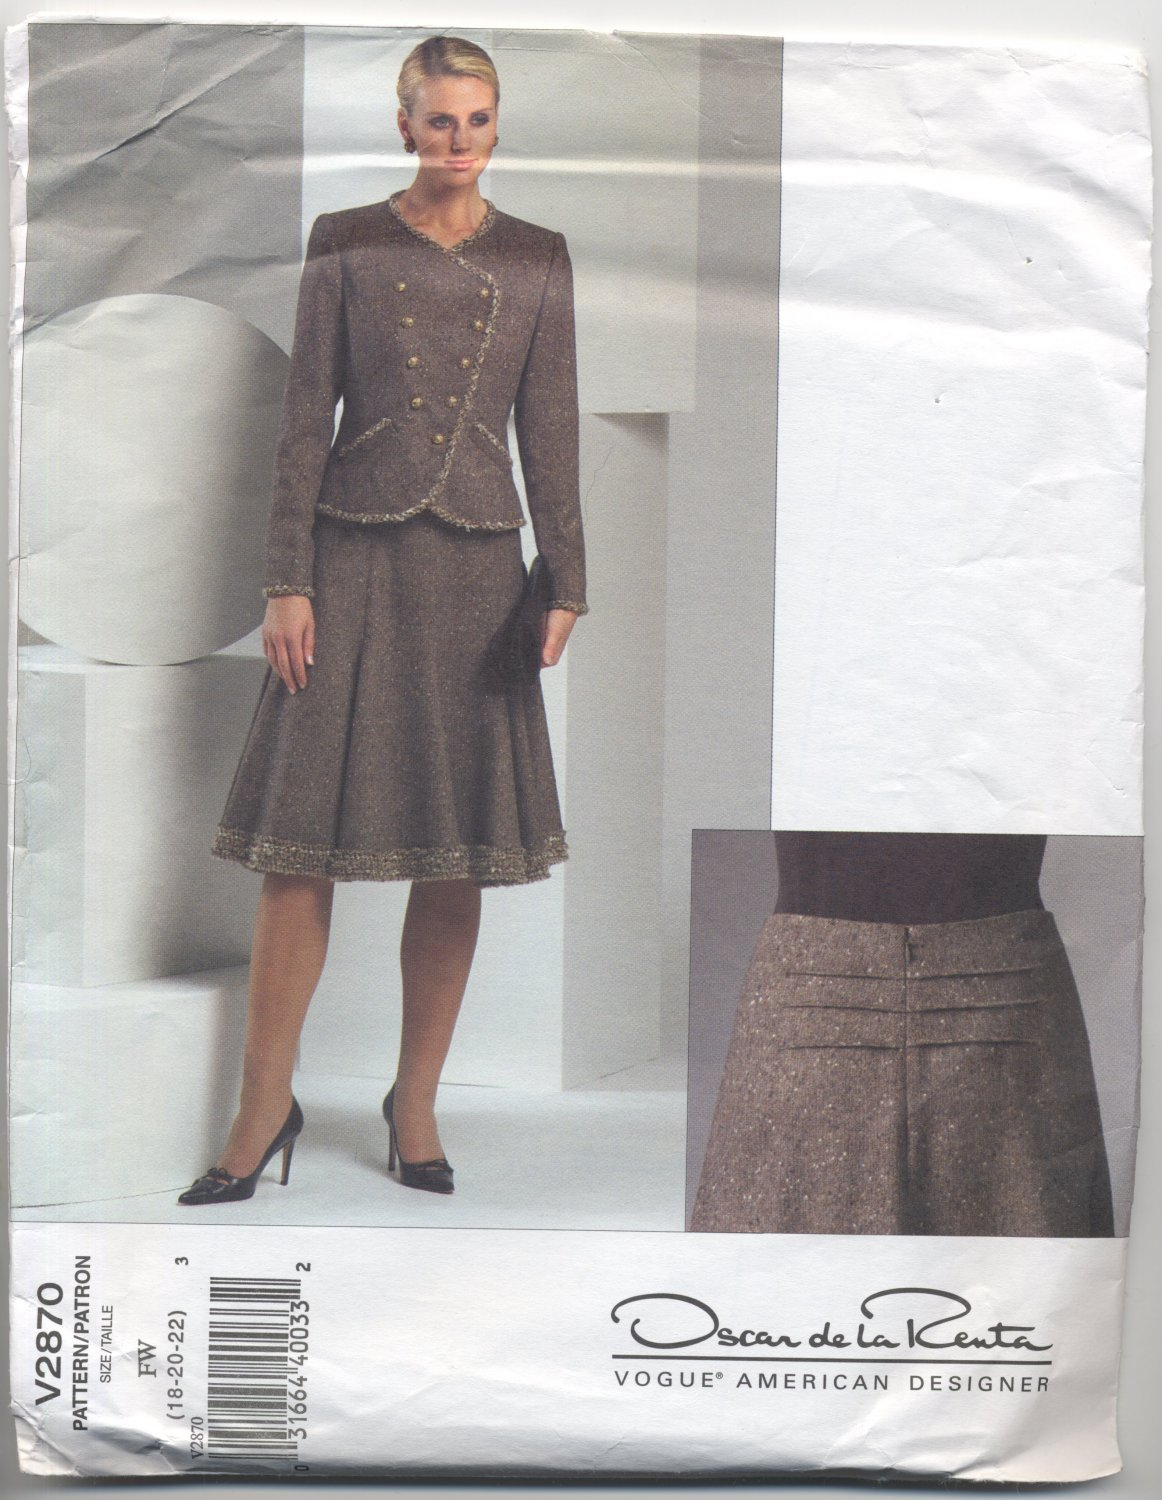 Vogue 2870 Oscar de la Renta Designer Jacket and Skirt Sewing Pattern Misses' 18 20 22 Dressy Chic